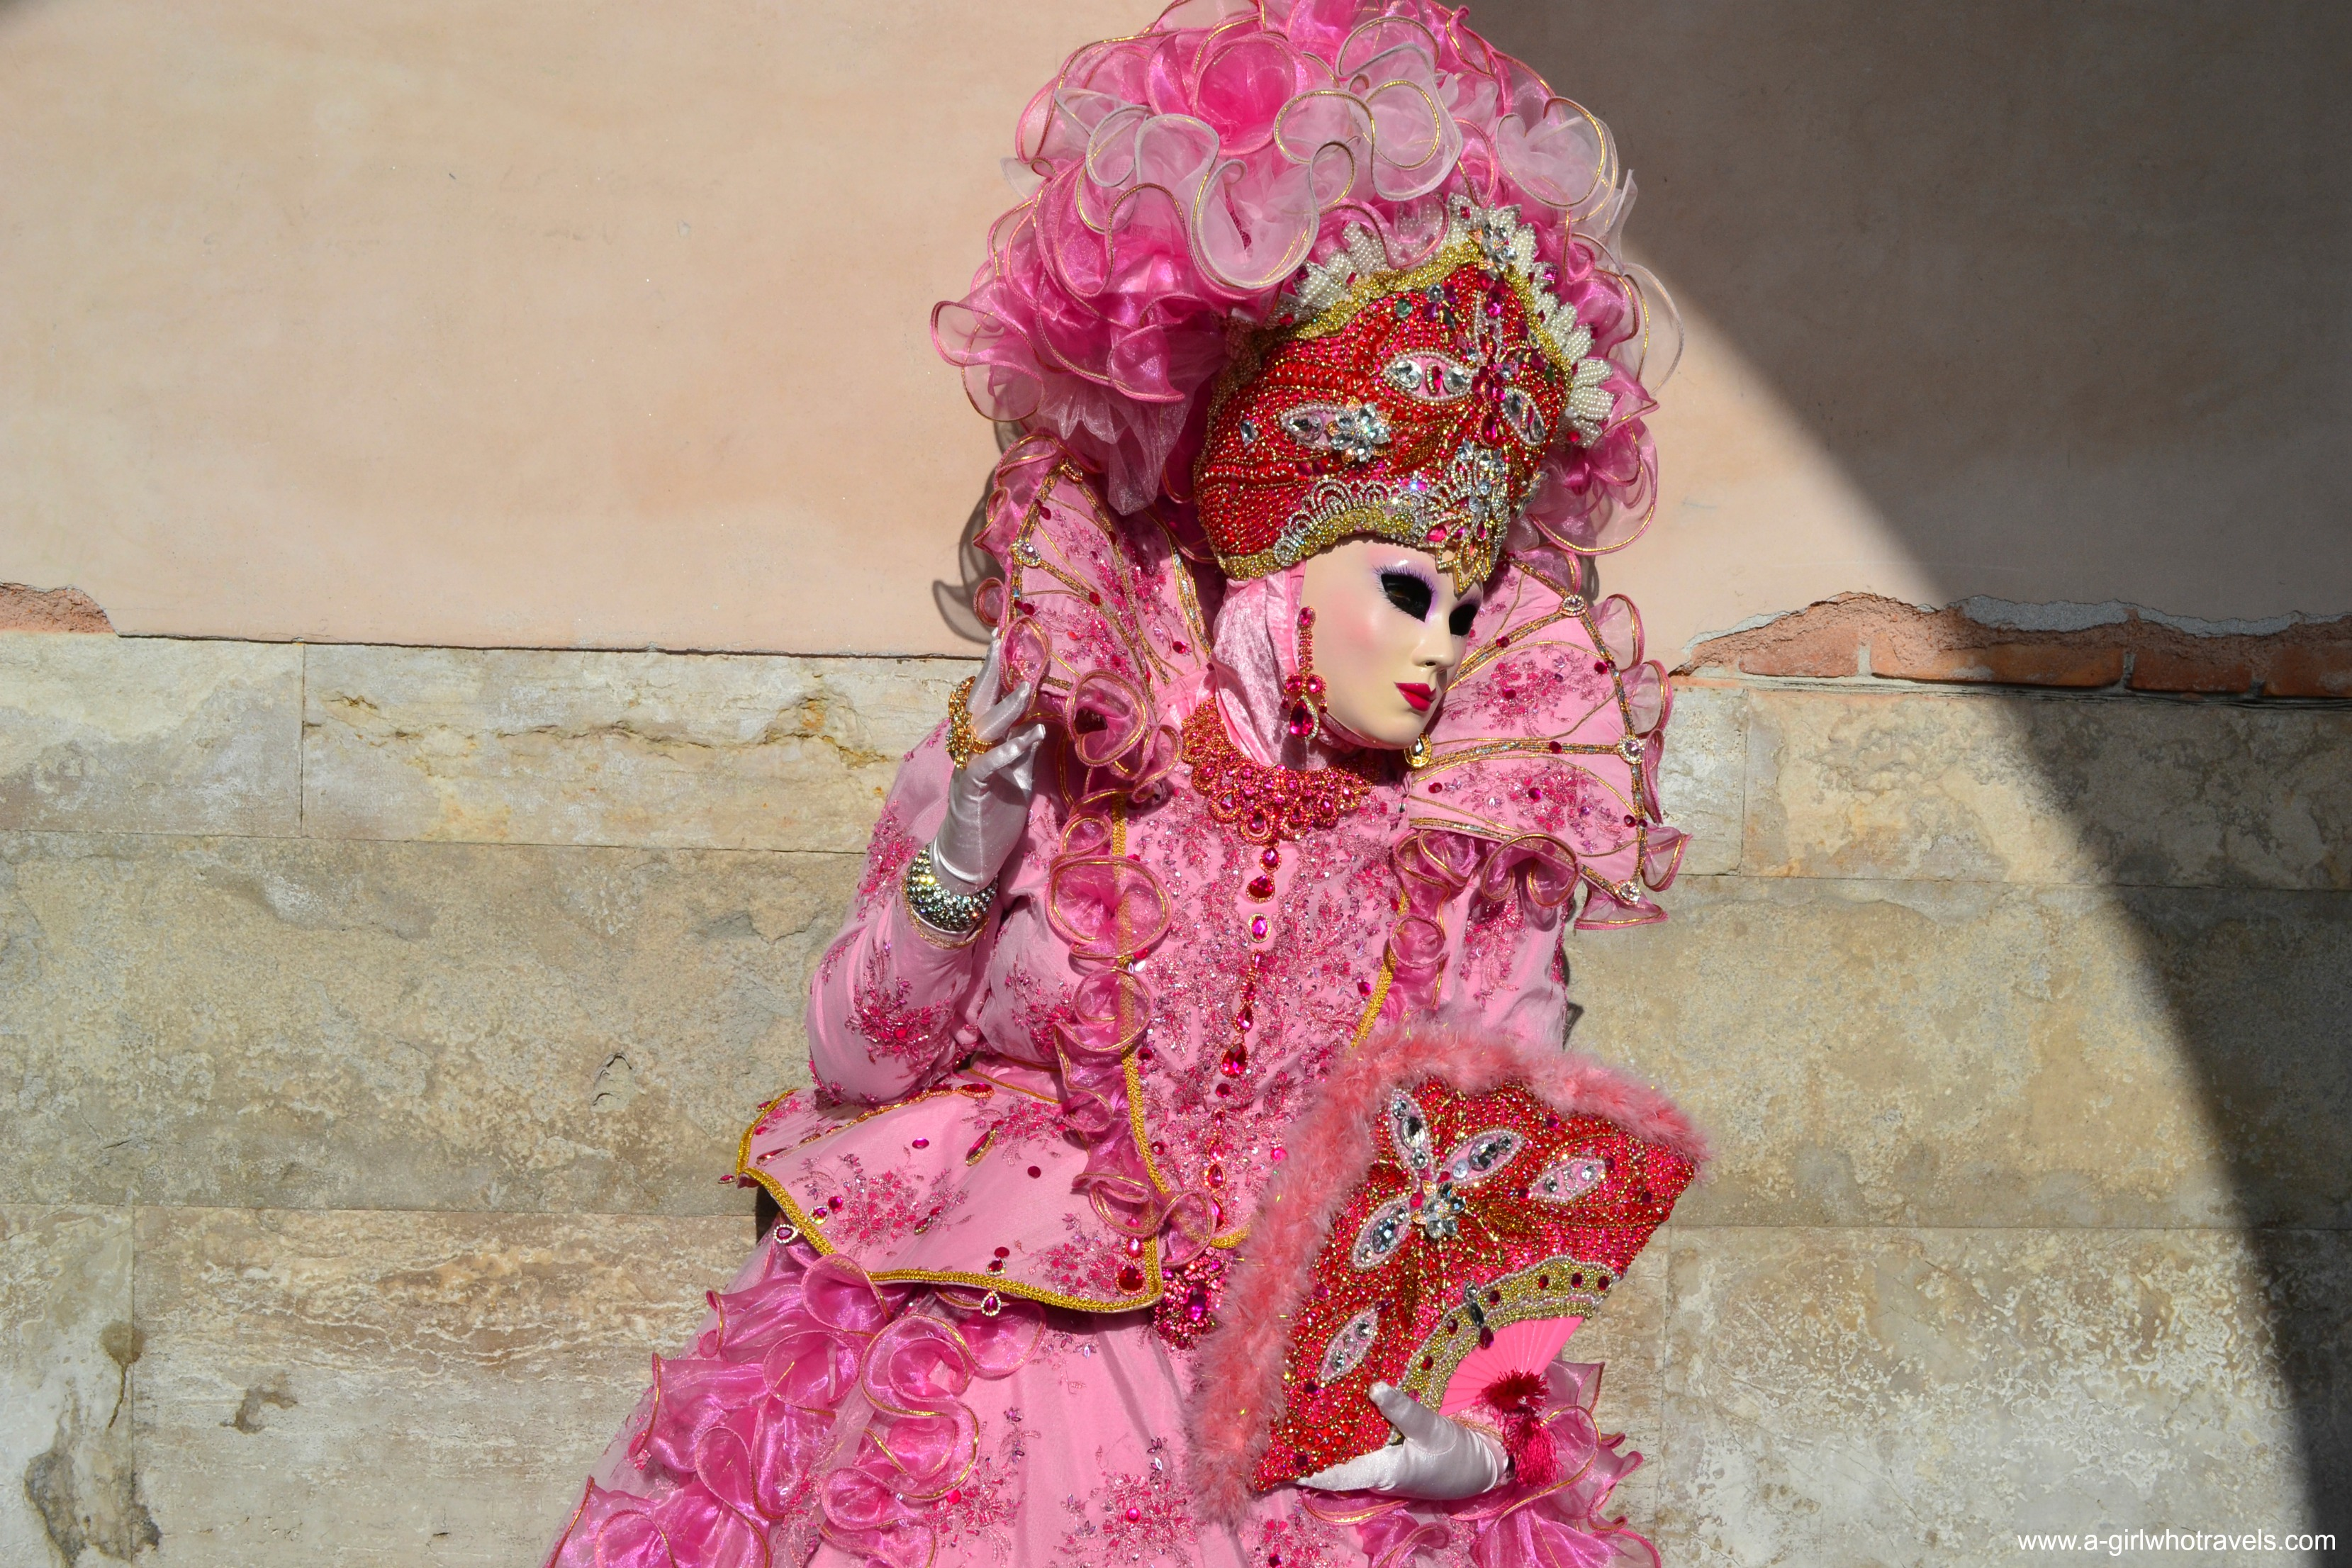 Venice Carnival on the Cheap? It's easy!